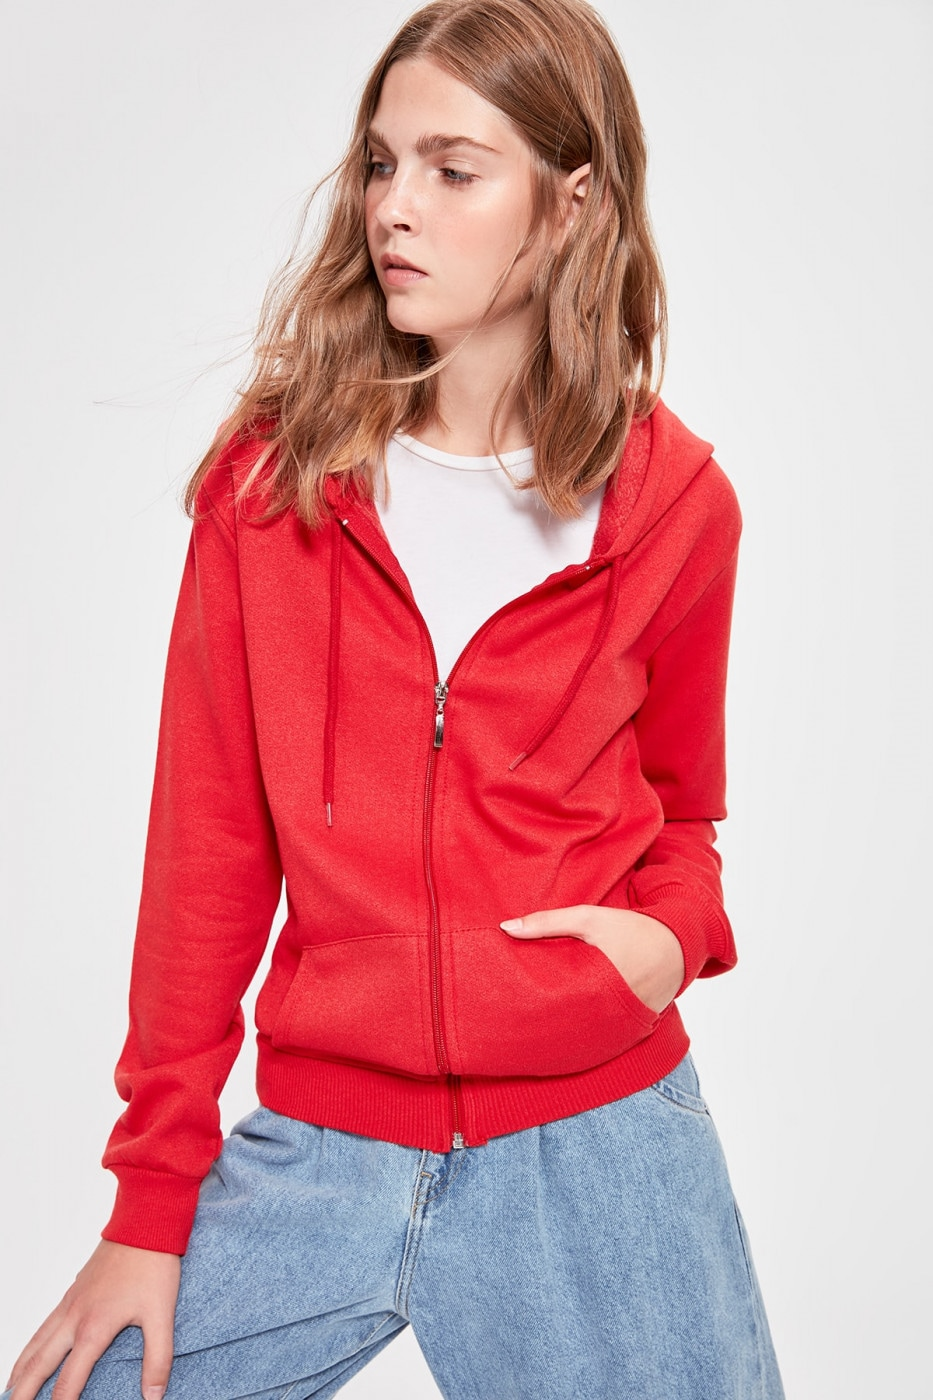 Trendyol Basic Knitted Sweatshirt with Red Zipper Hoodie